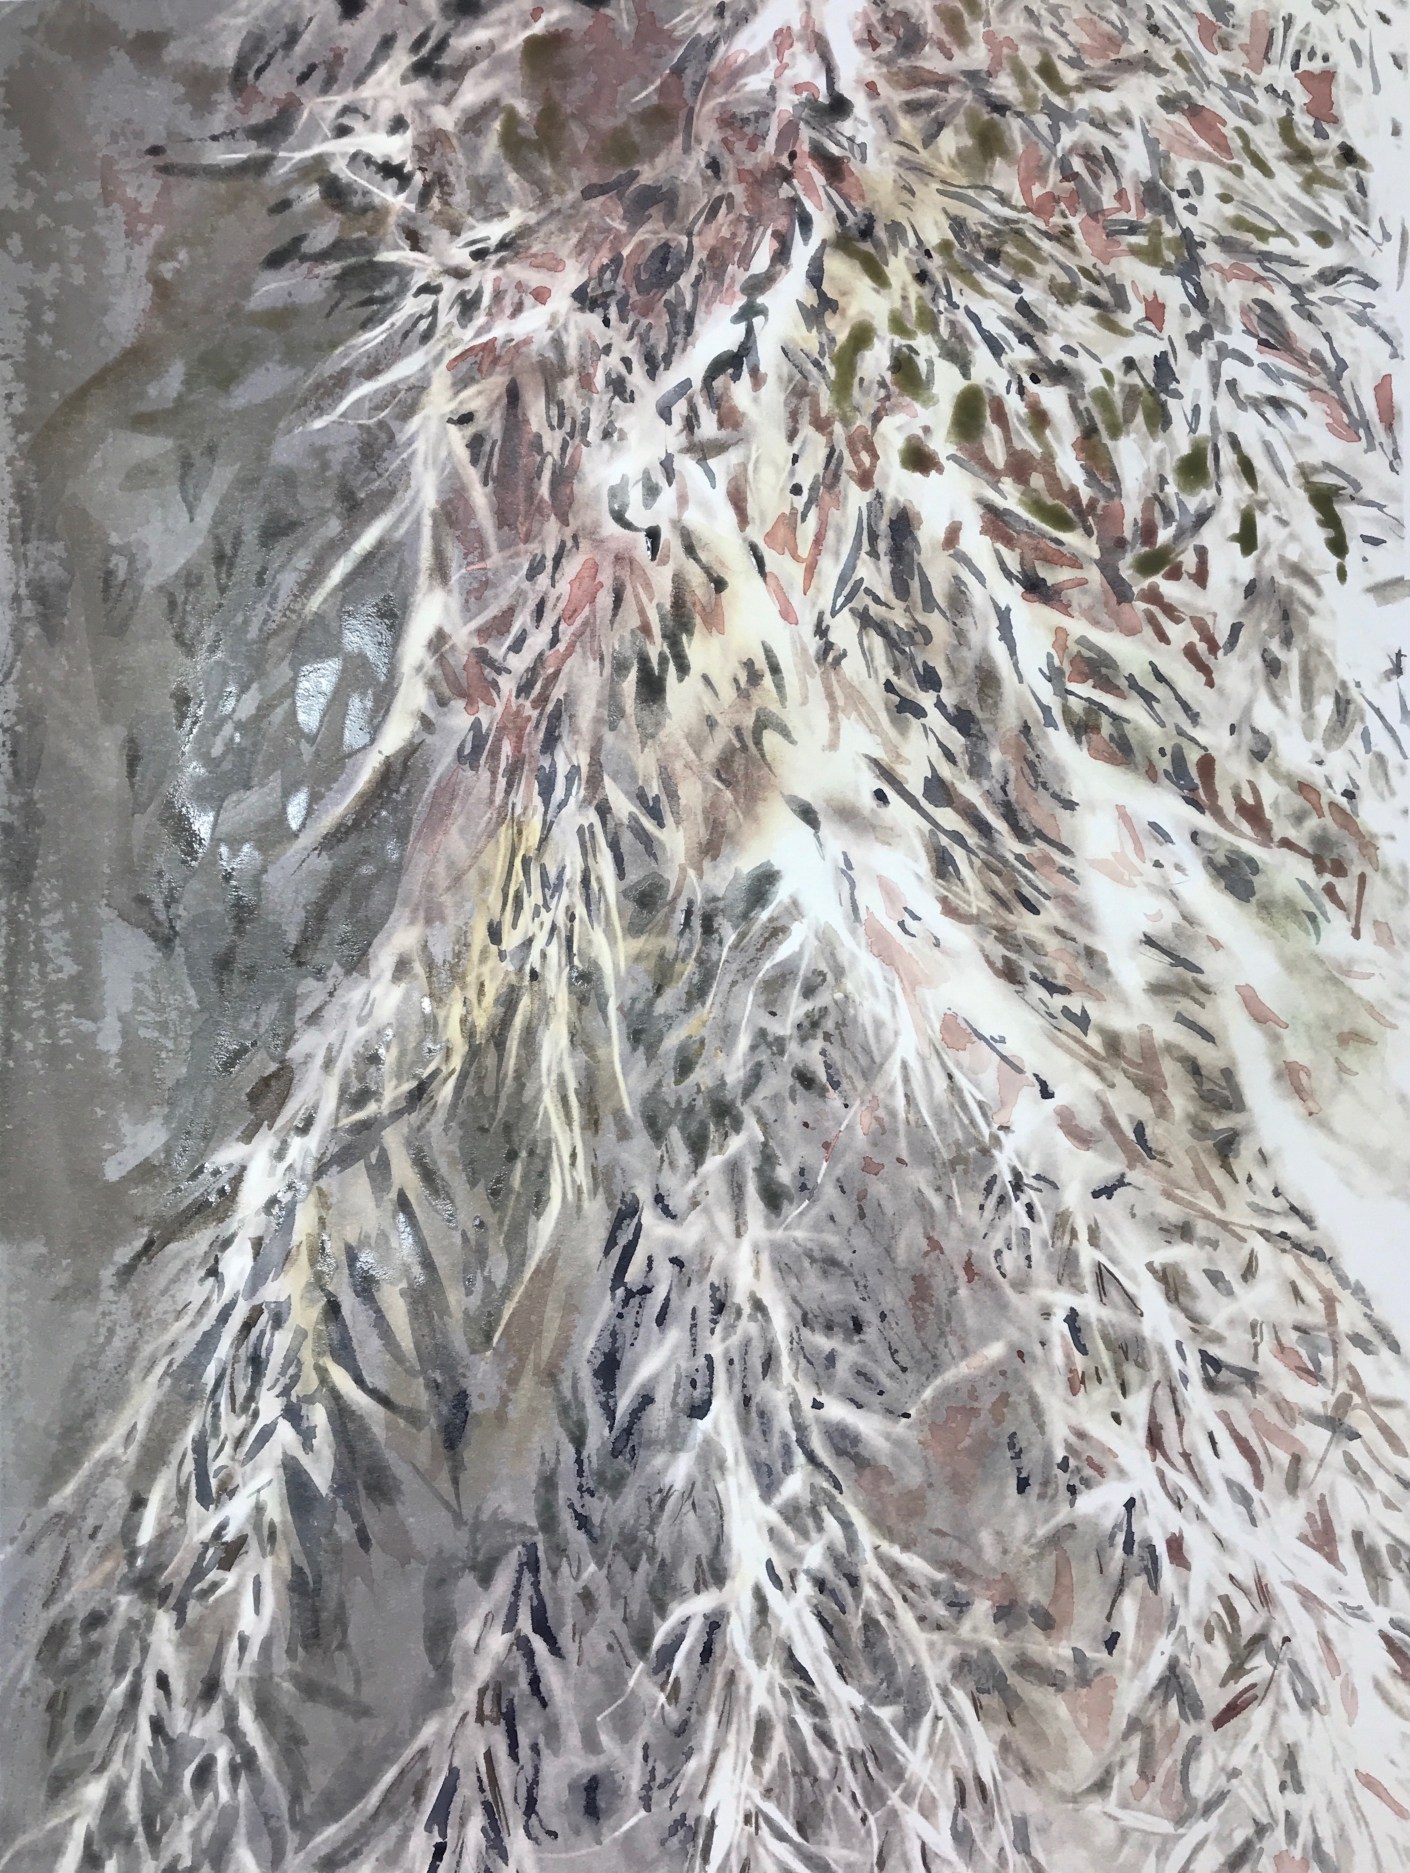 pampas grass 31_watercolor in blickartwatercolor paper 31x41cm 300gsm_Edna Carla Stradioto 2018